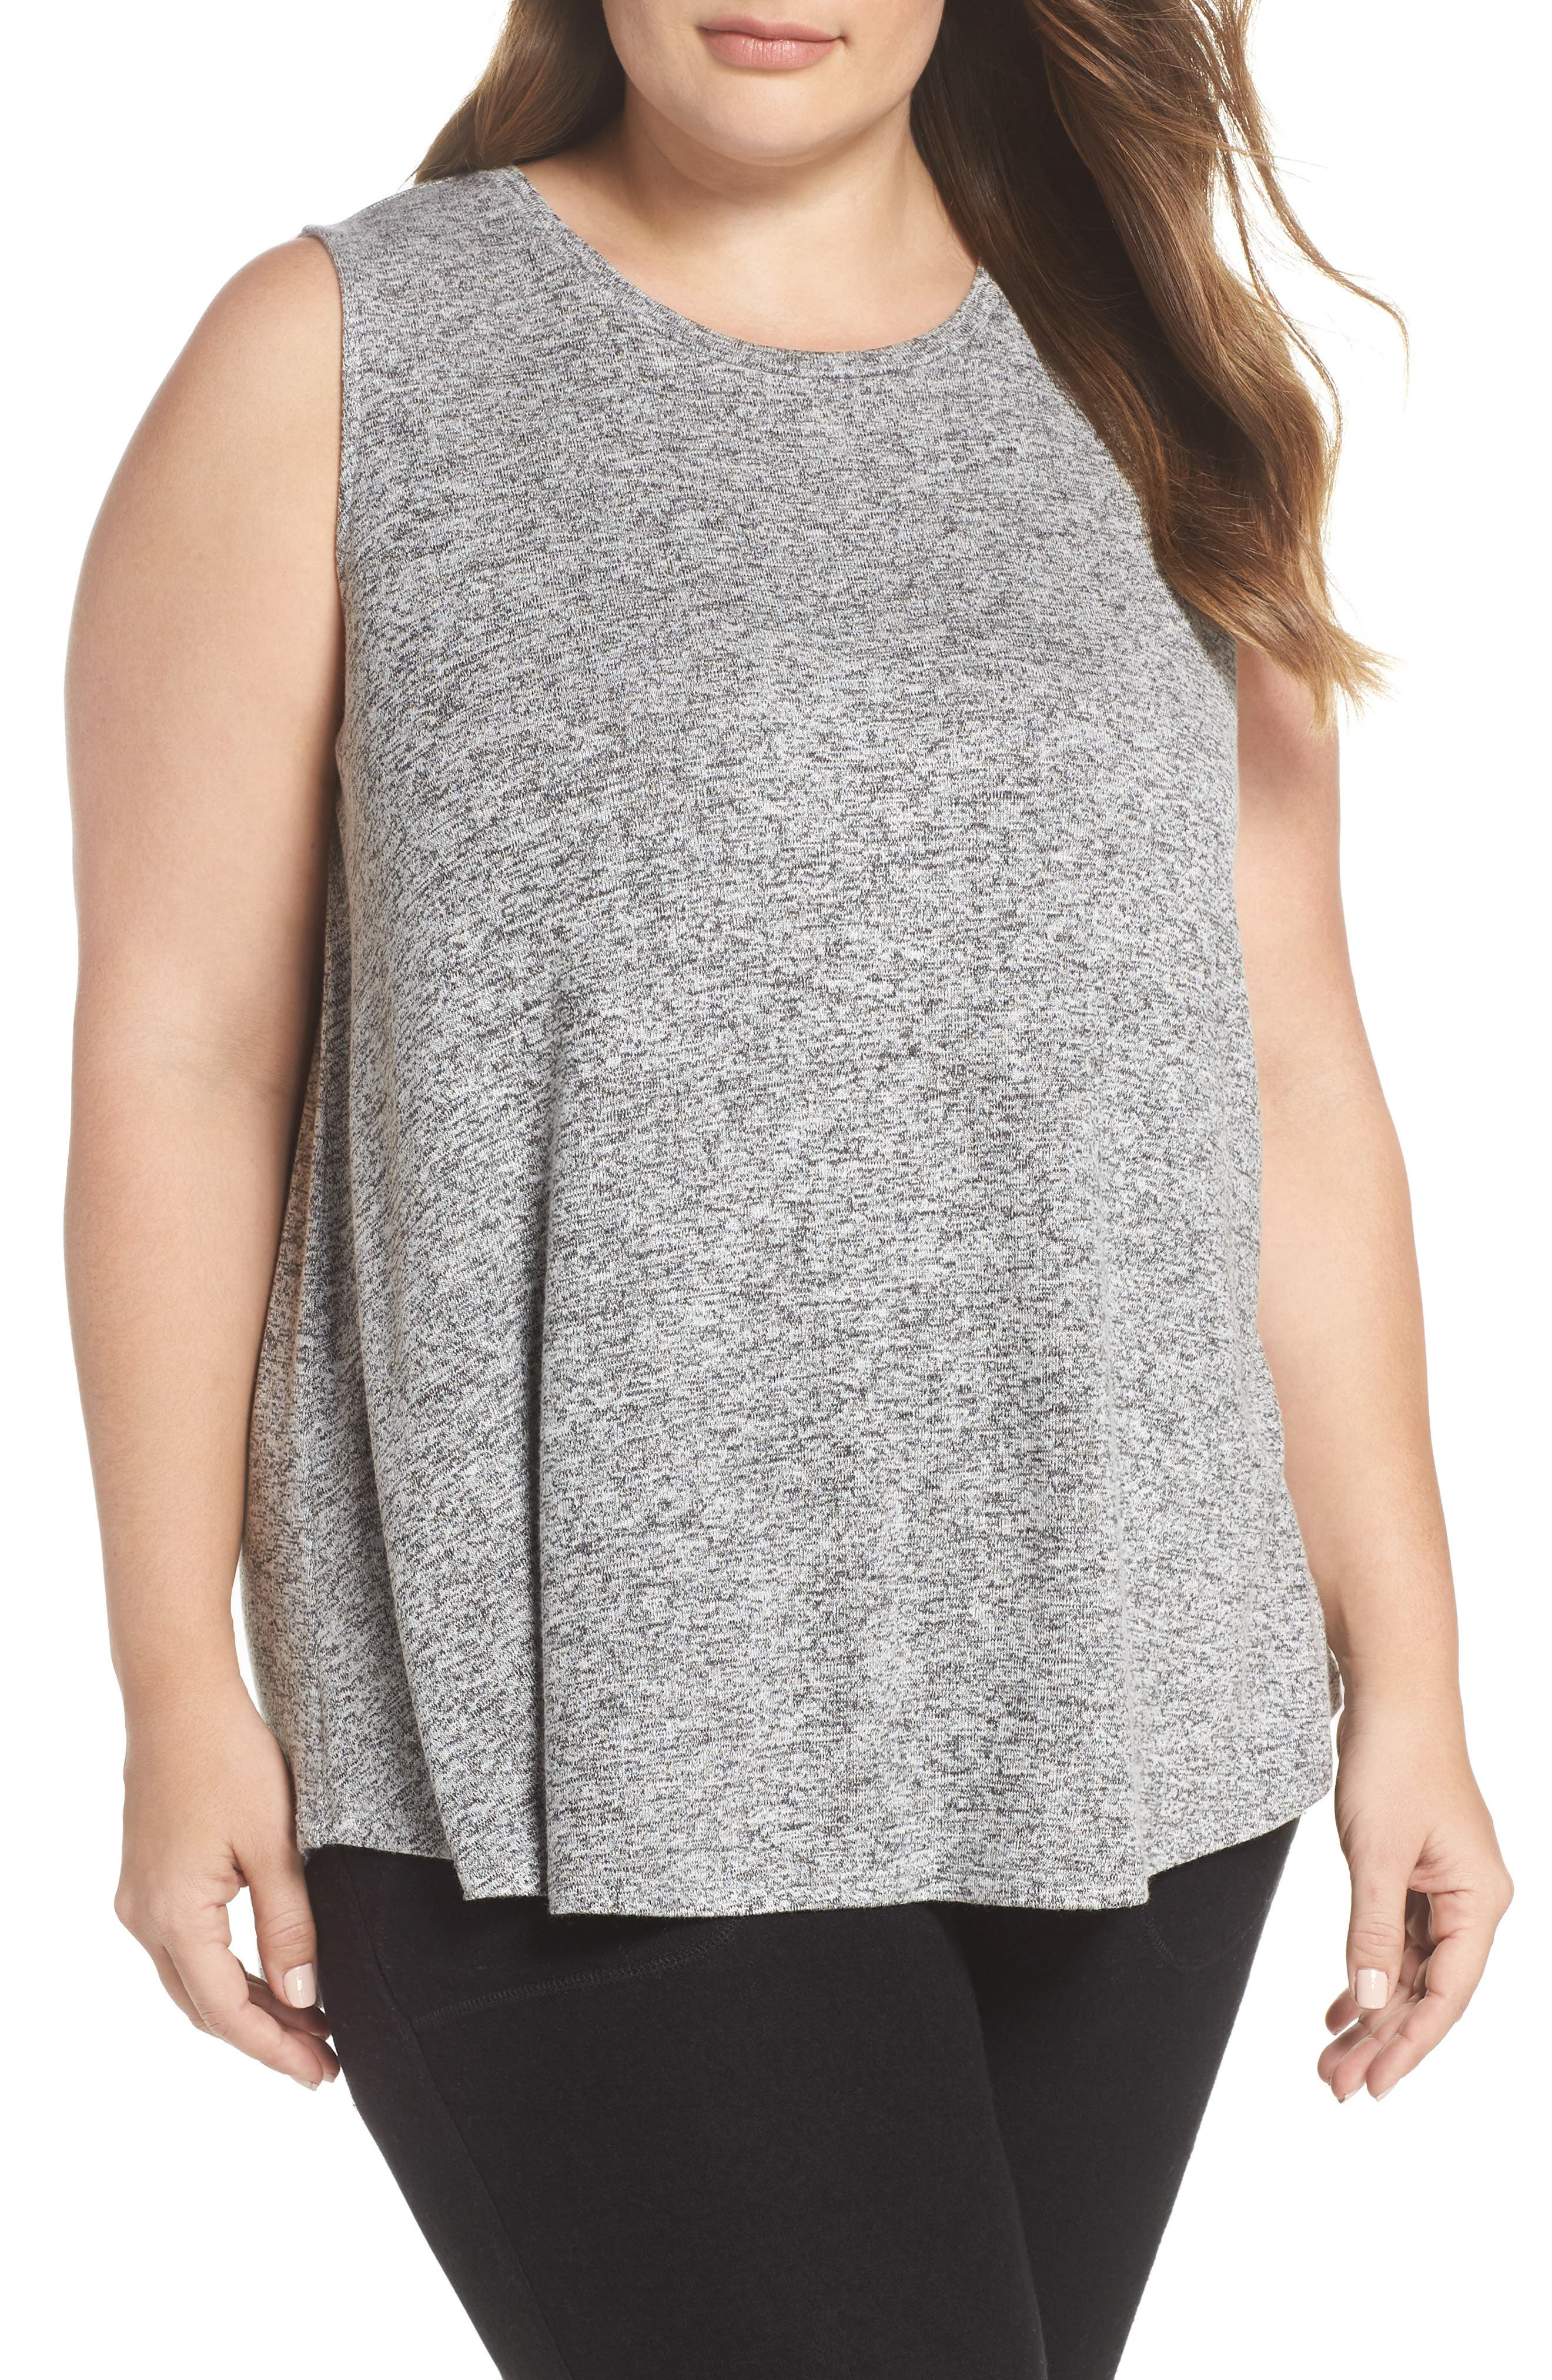 x Living in Yellow Millie Muscle Tank,                             Main thumbnail 1, color,                             Heather Grey Marled